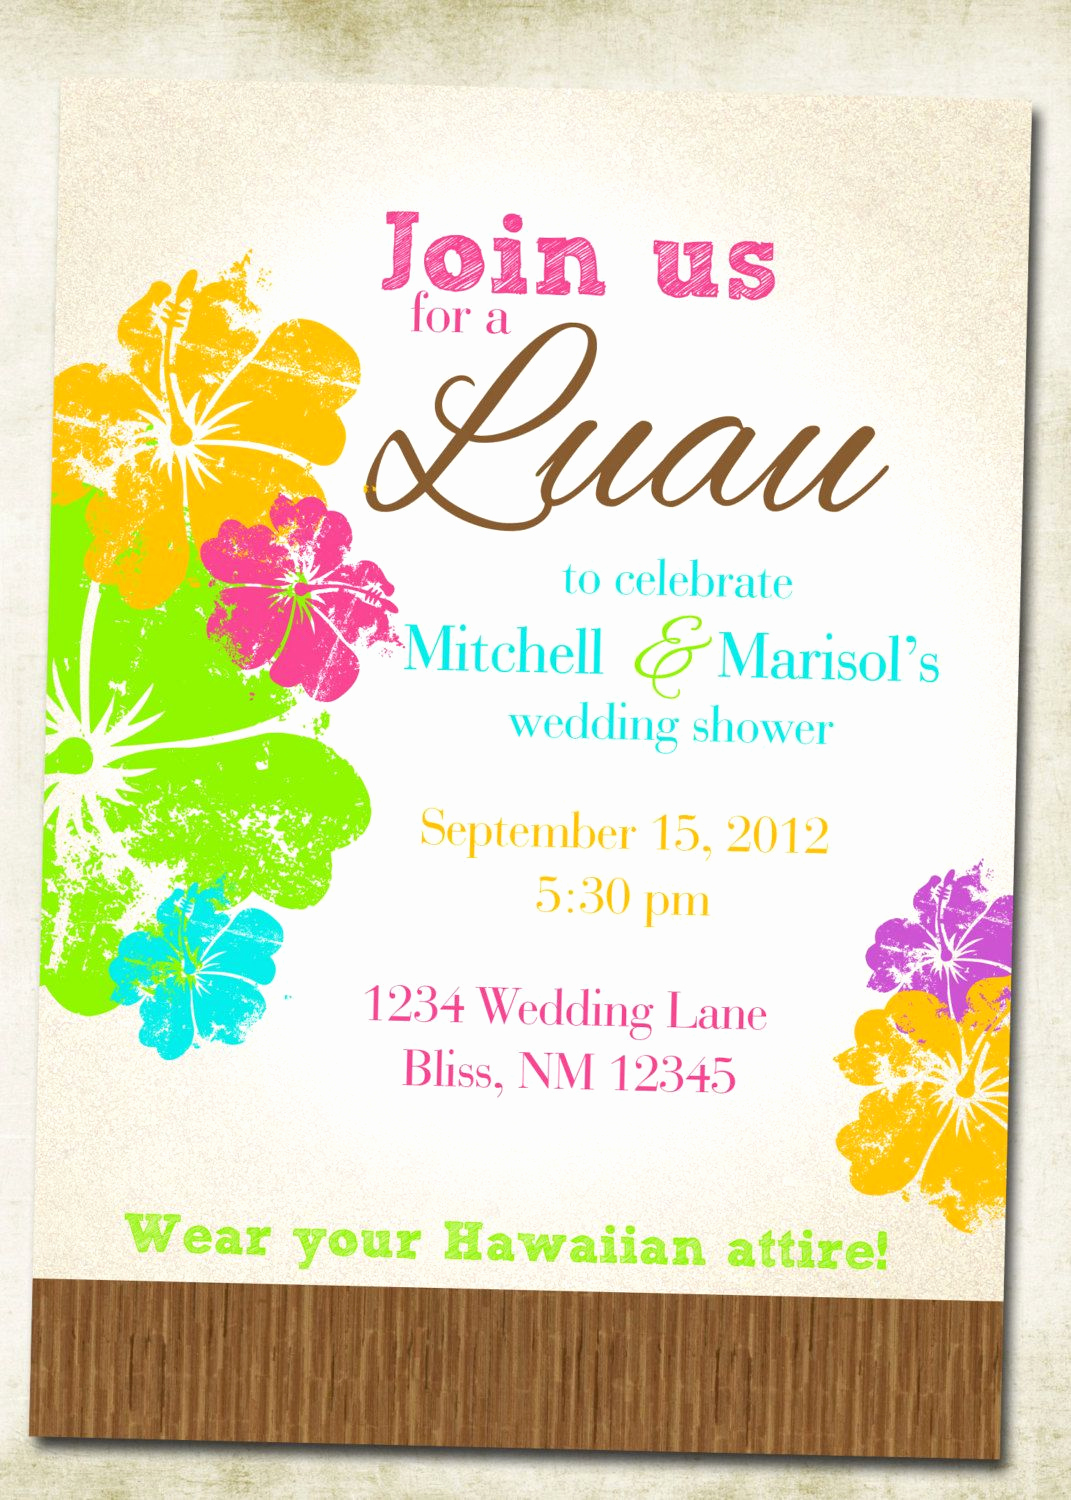 Luau Birthday Invitation Wording New Hawaiian Wedding themes On Pinterest